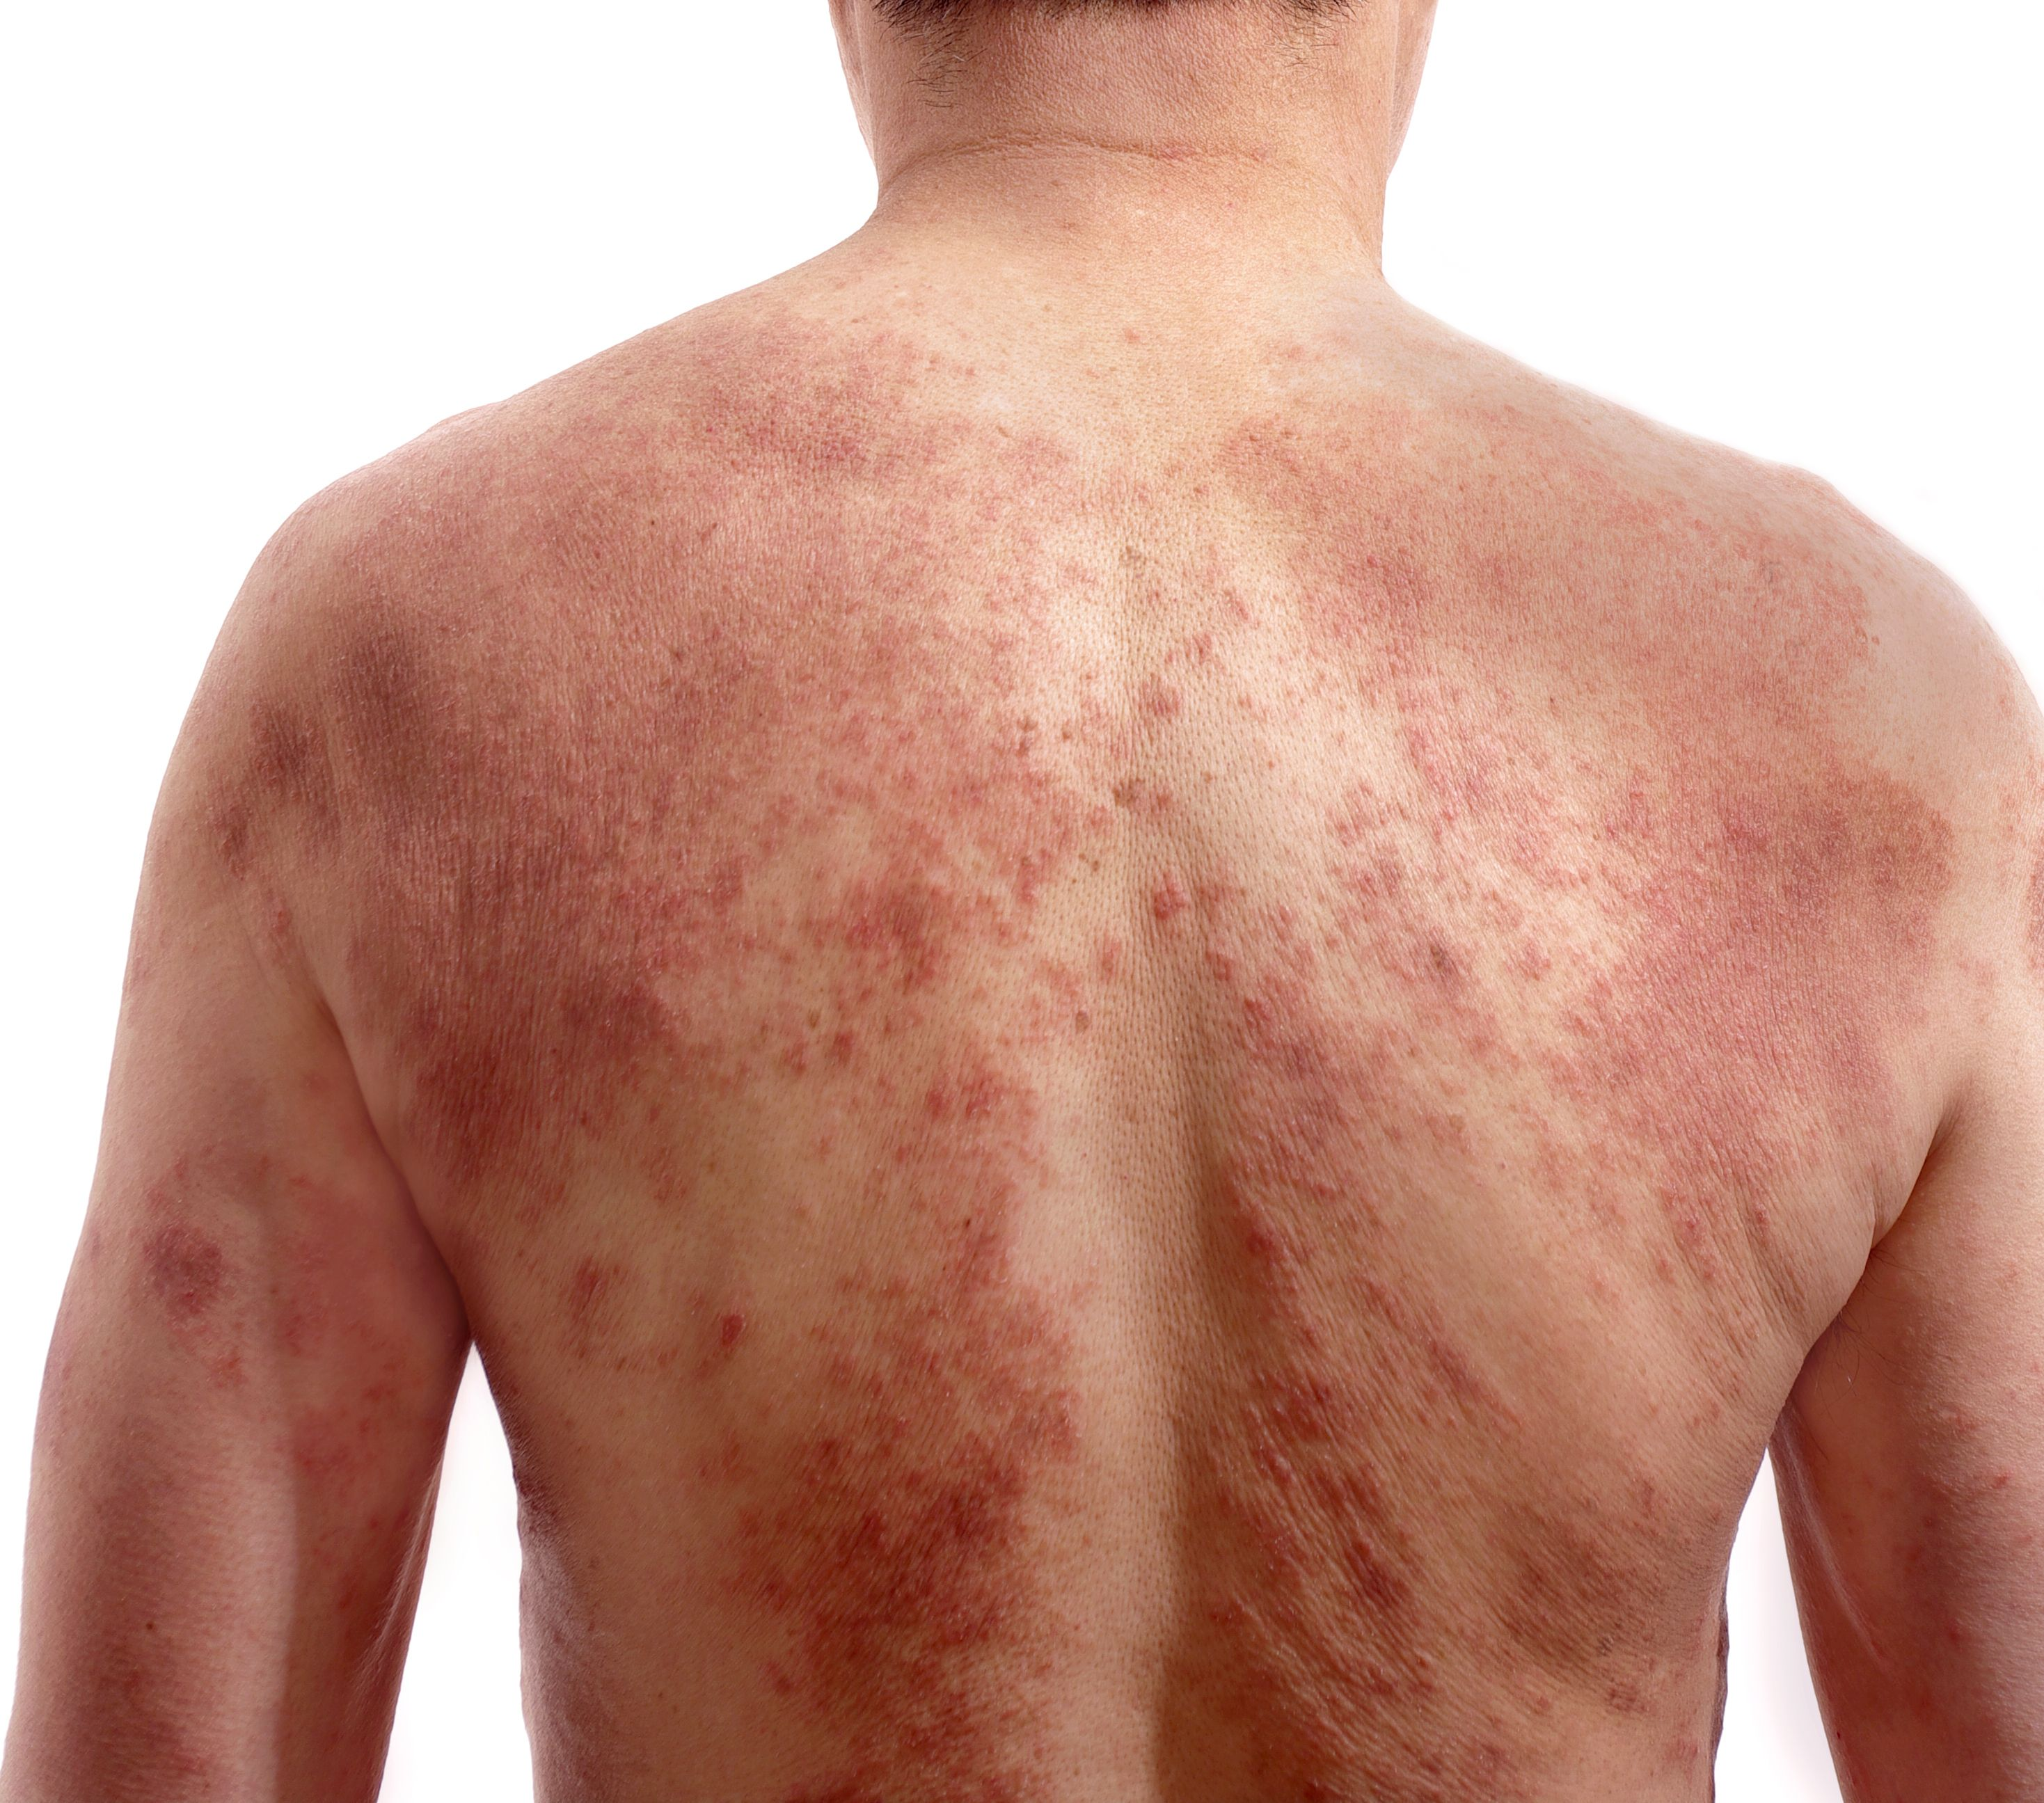 Who gets psoriasis? Anyone can get psoriasis, but it occurs more often in adults.…